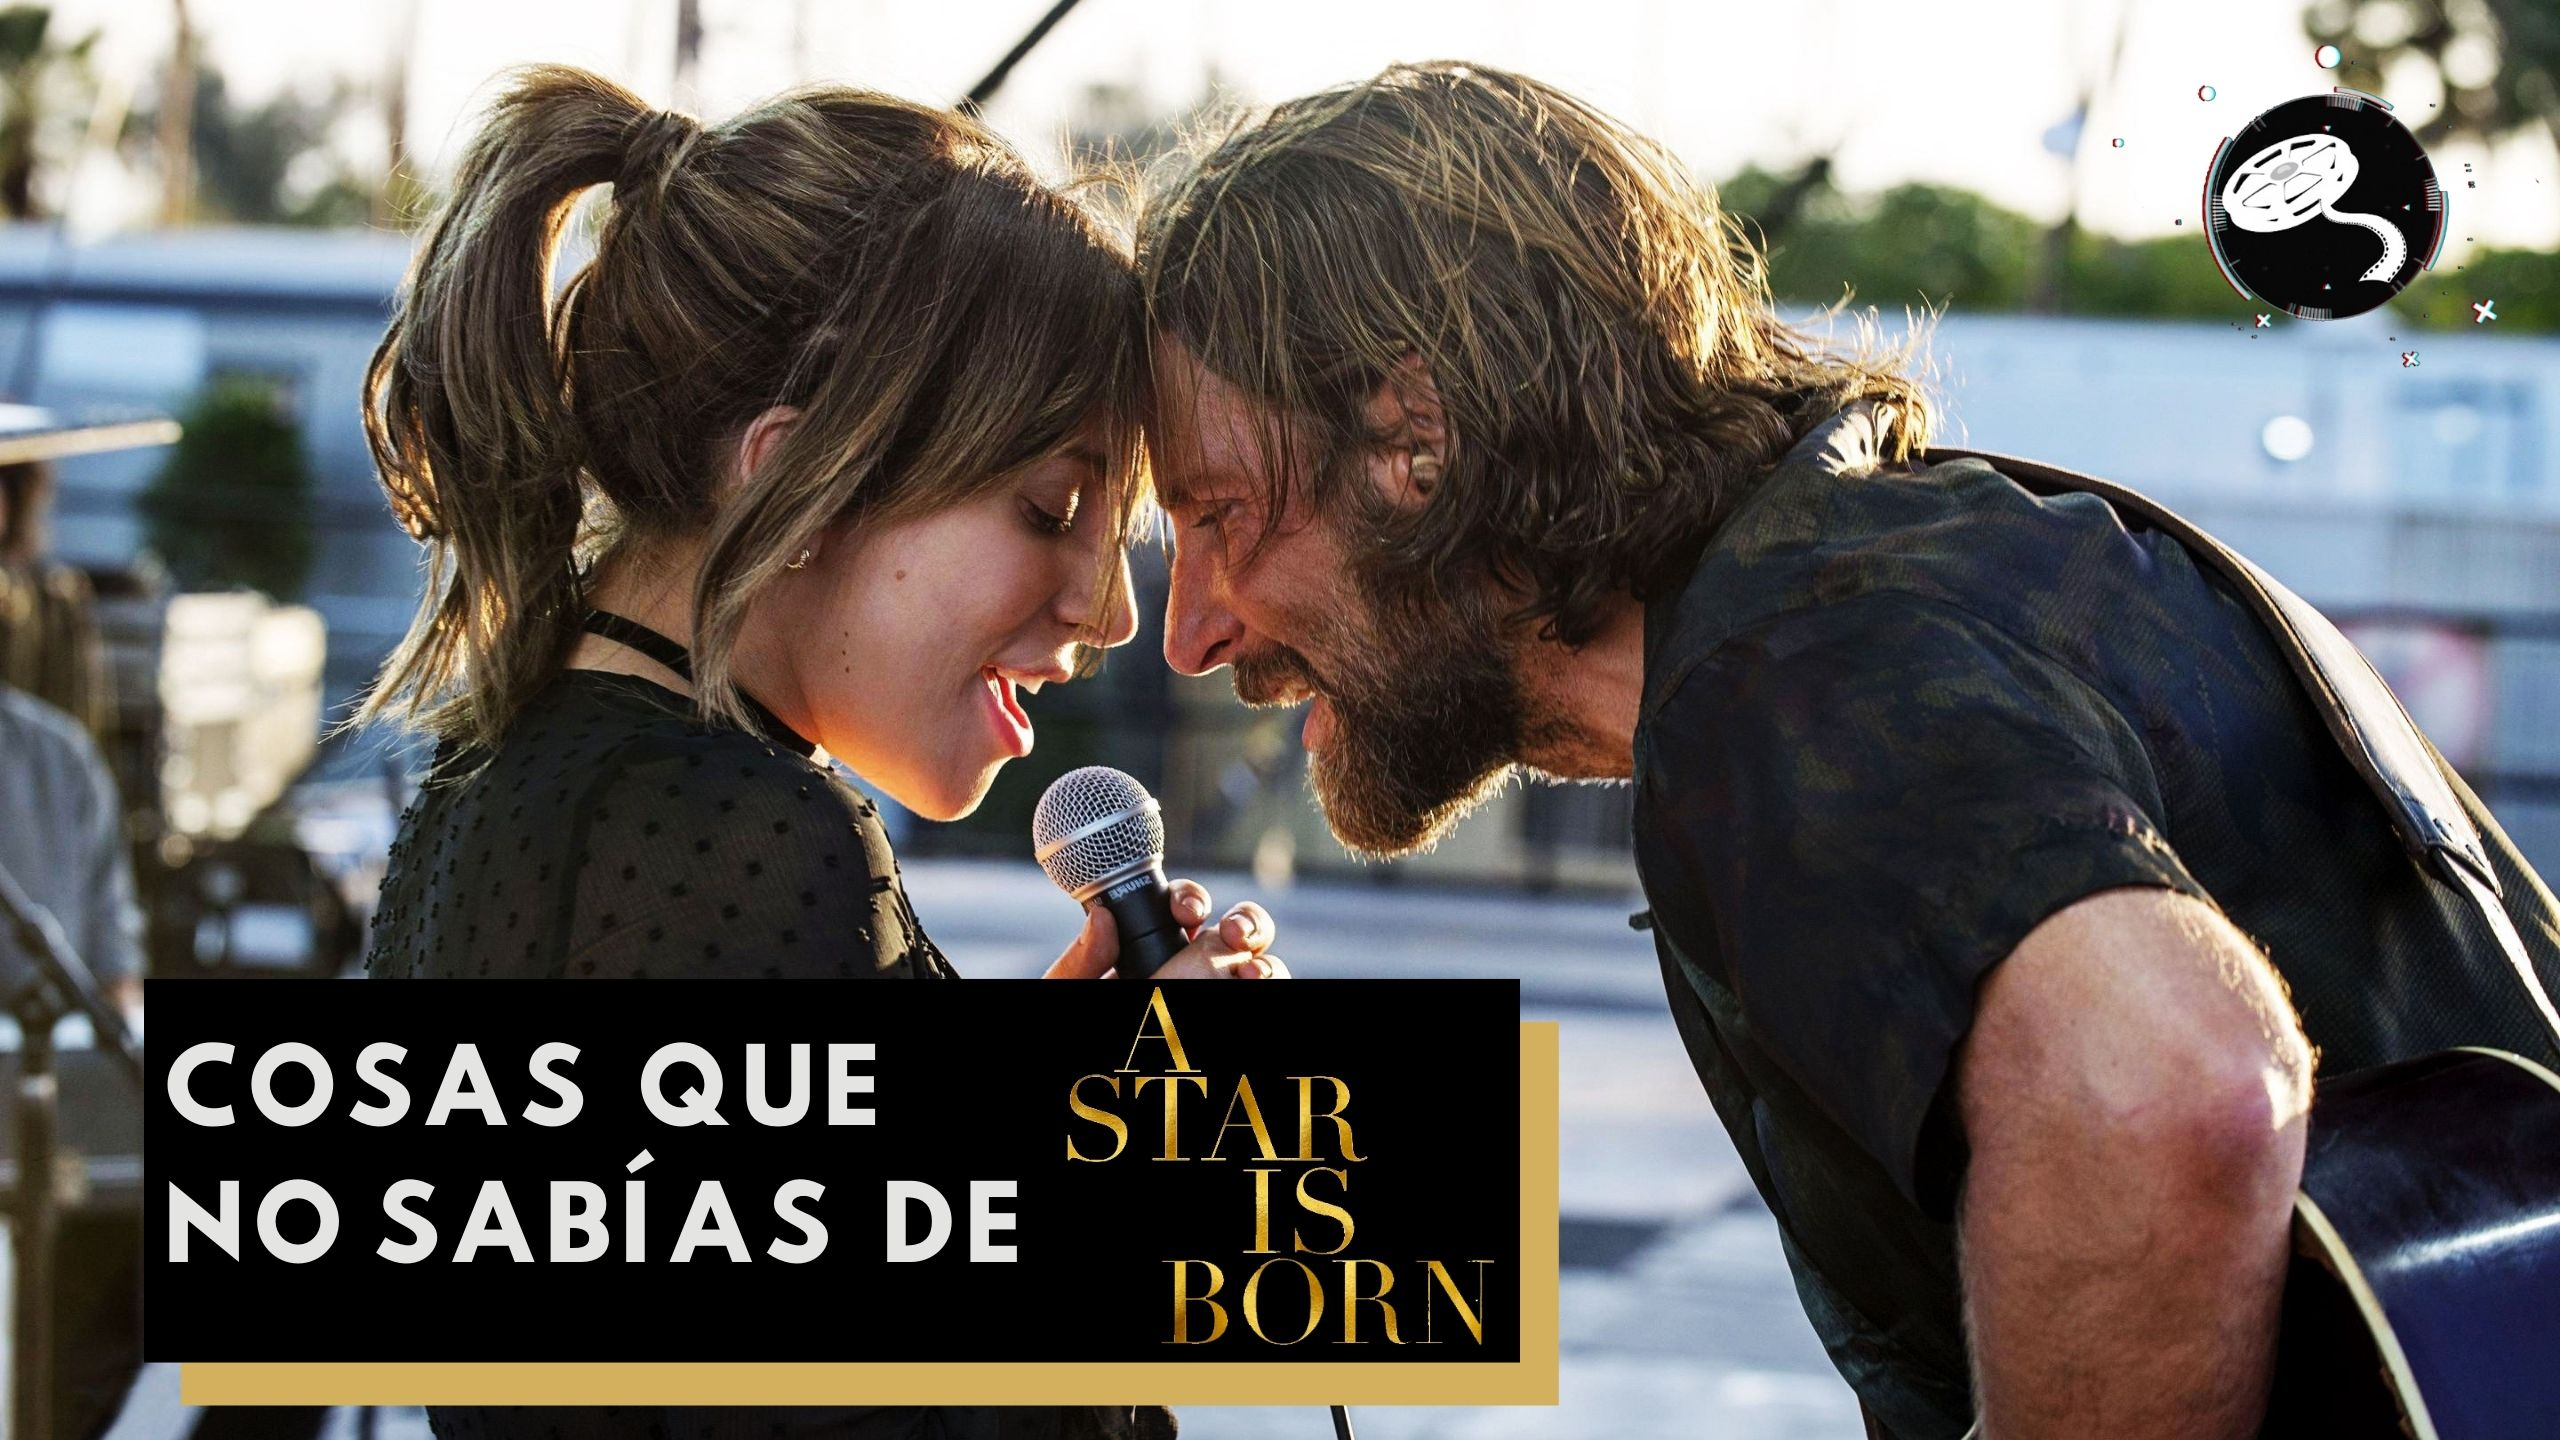 CLOSE UP: A STAR IS BORN